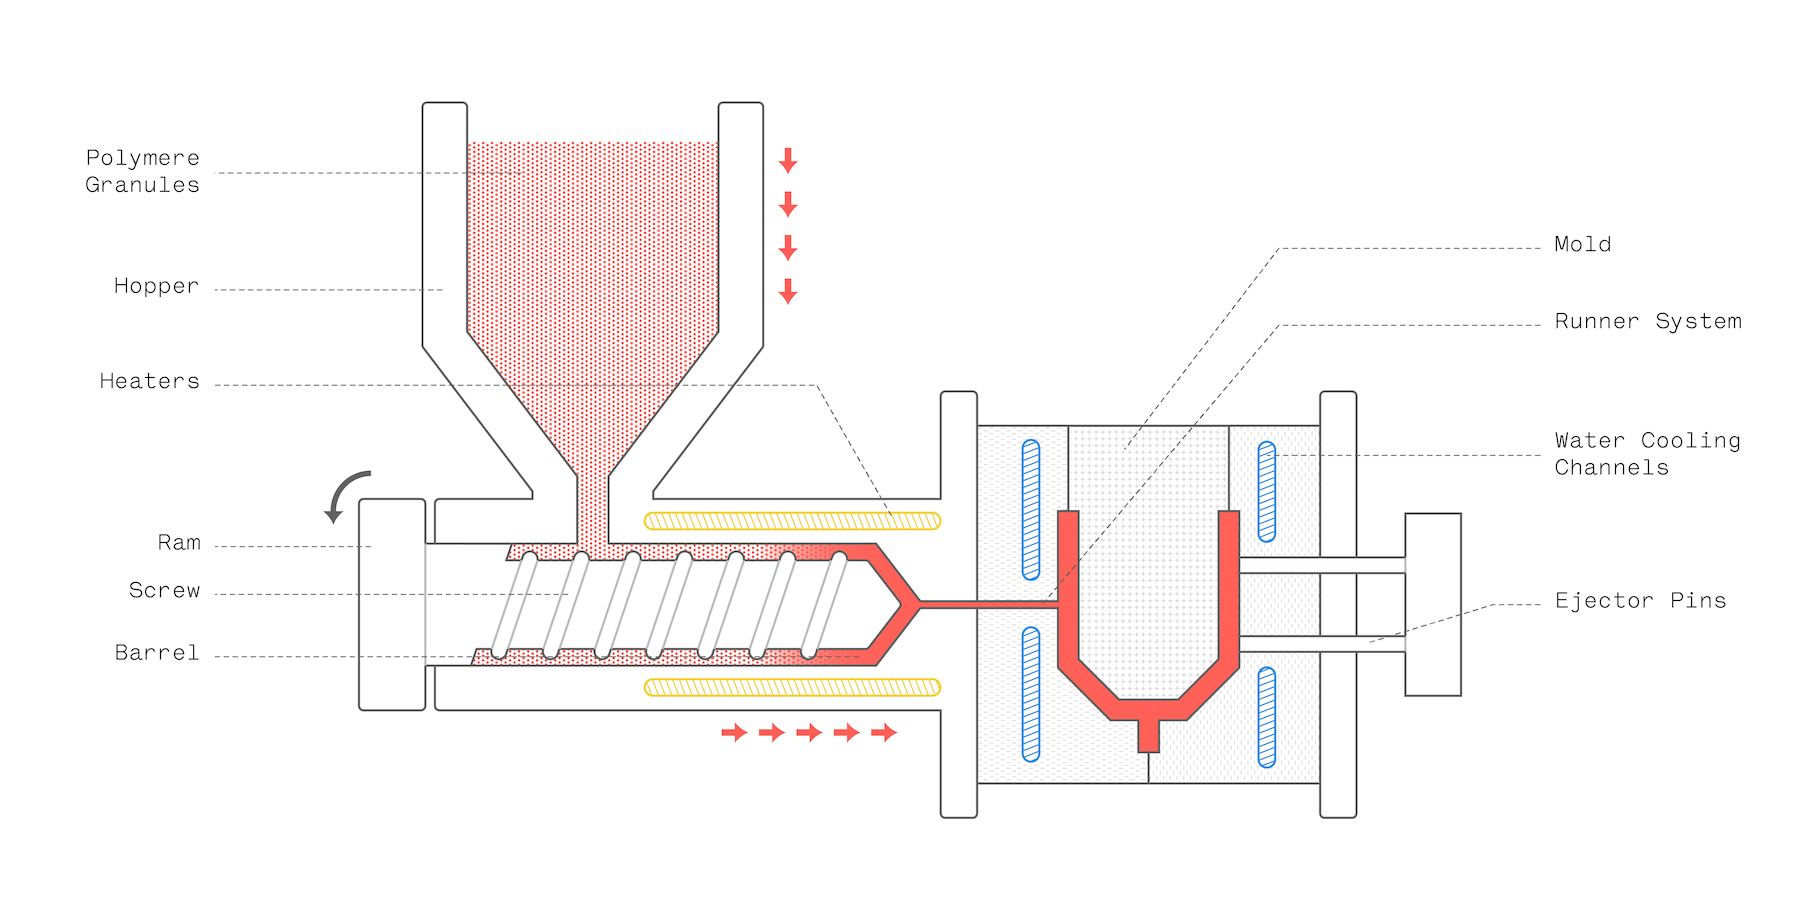 Complete The Diagram Of An Injection Moulding Machine Drawn Below